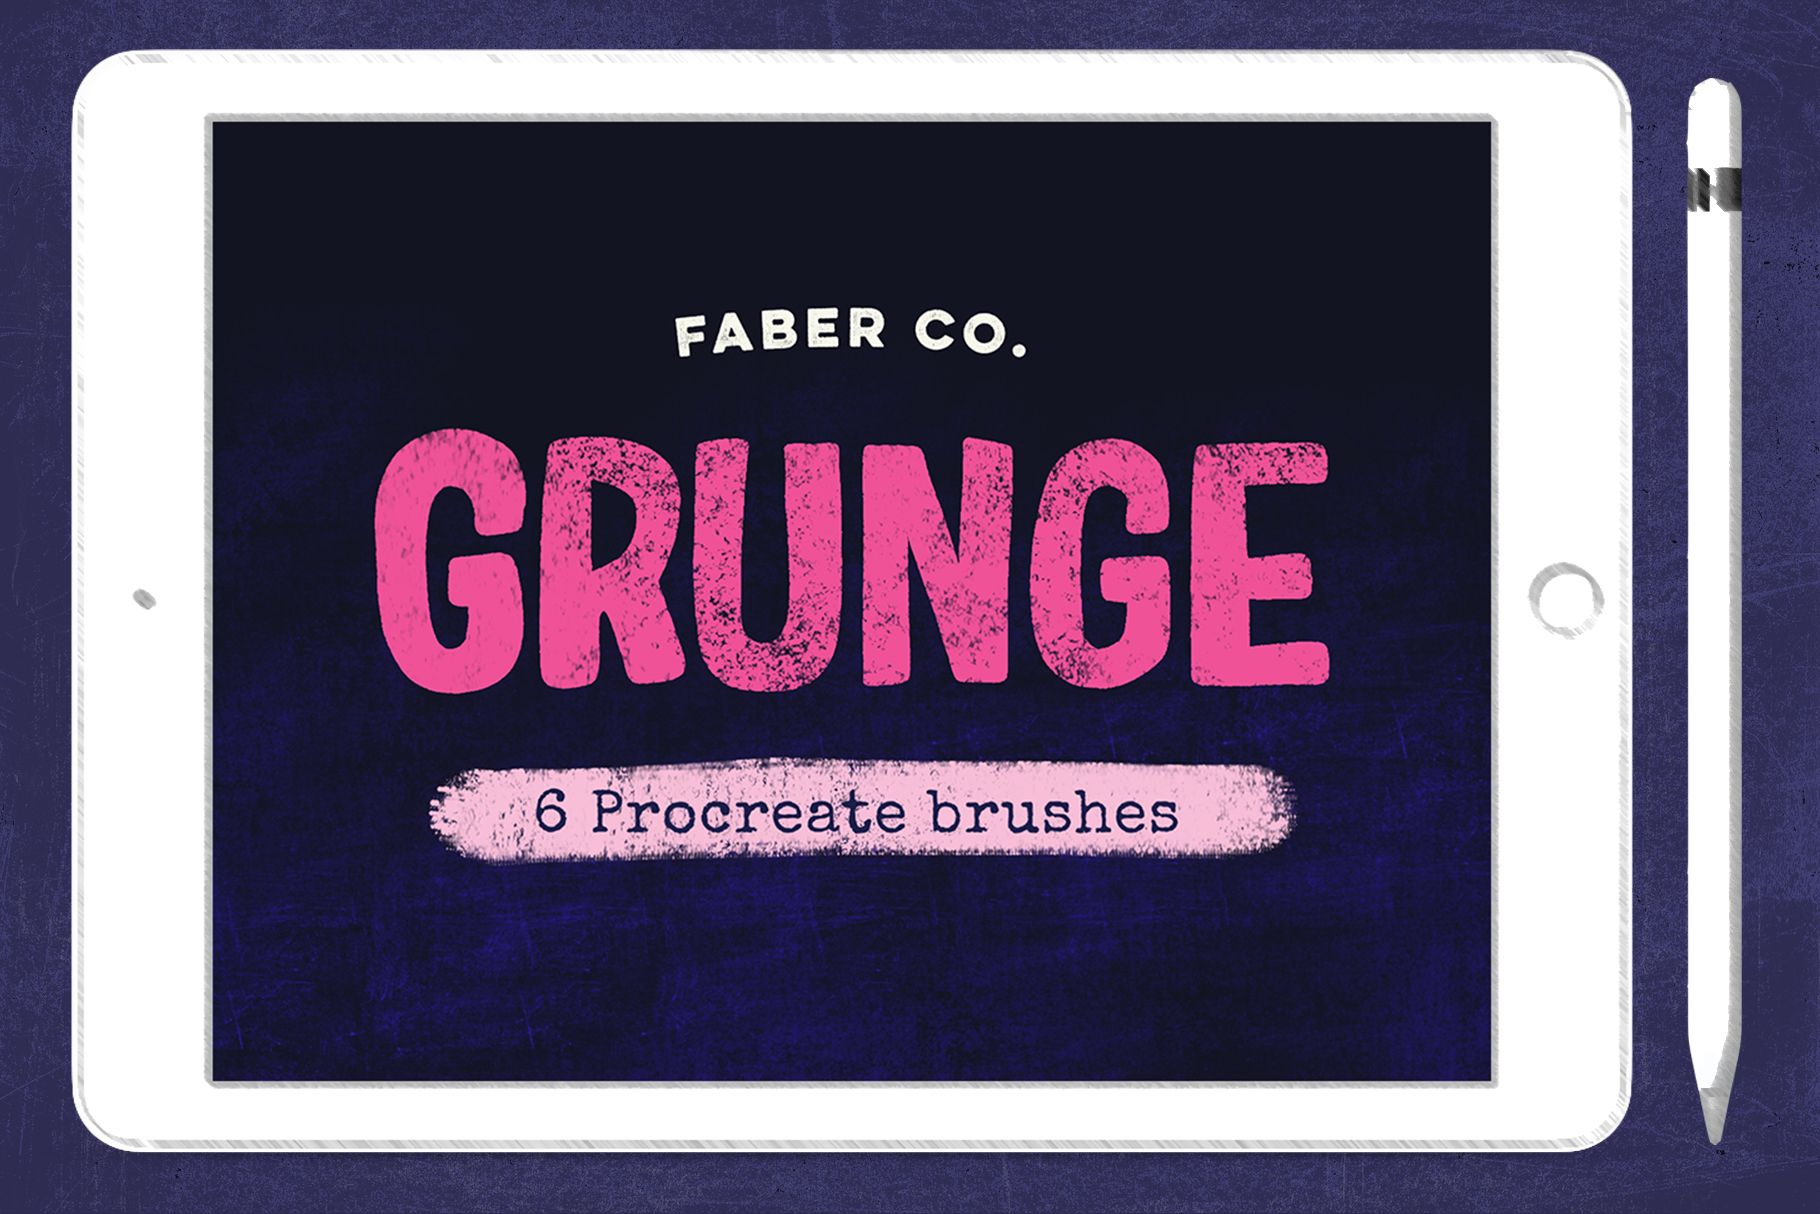 01_grunge-procreate-brushes_cover_no2_FaberCo-1820x1214.jpg